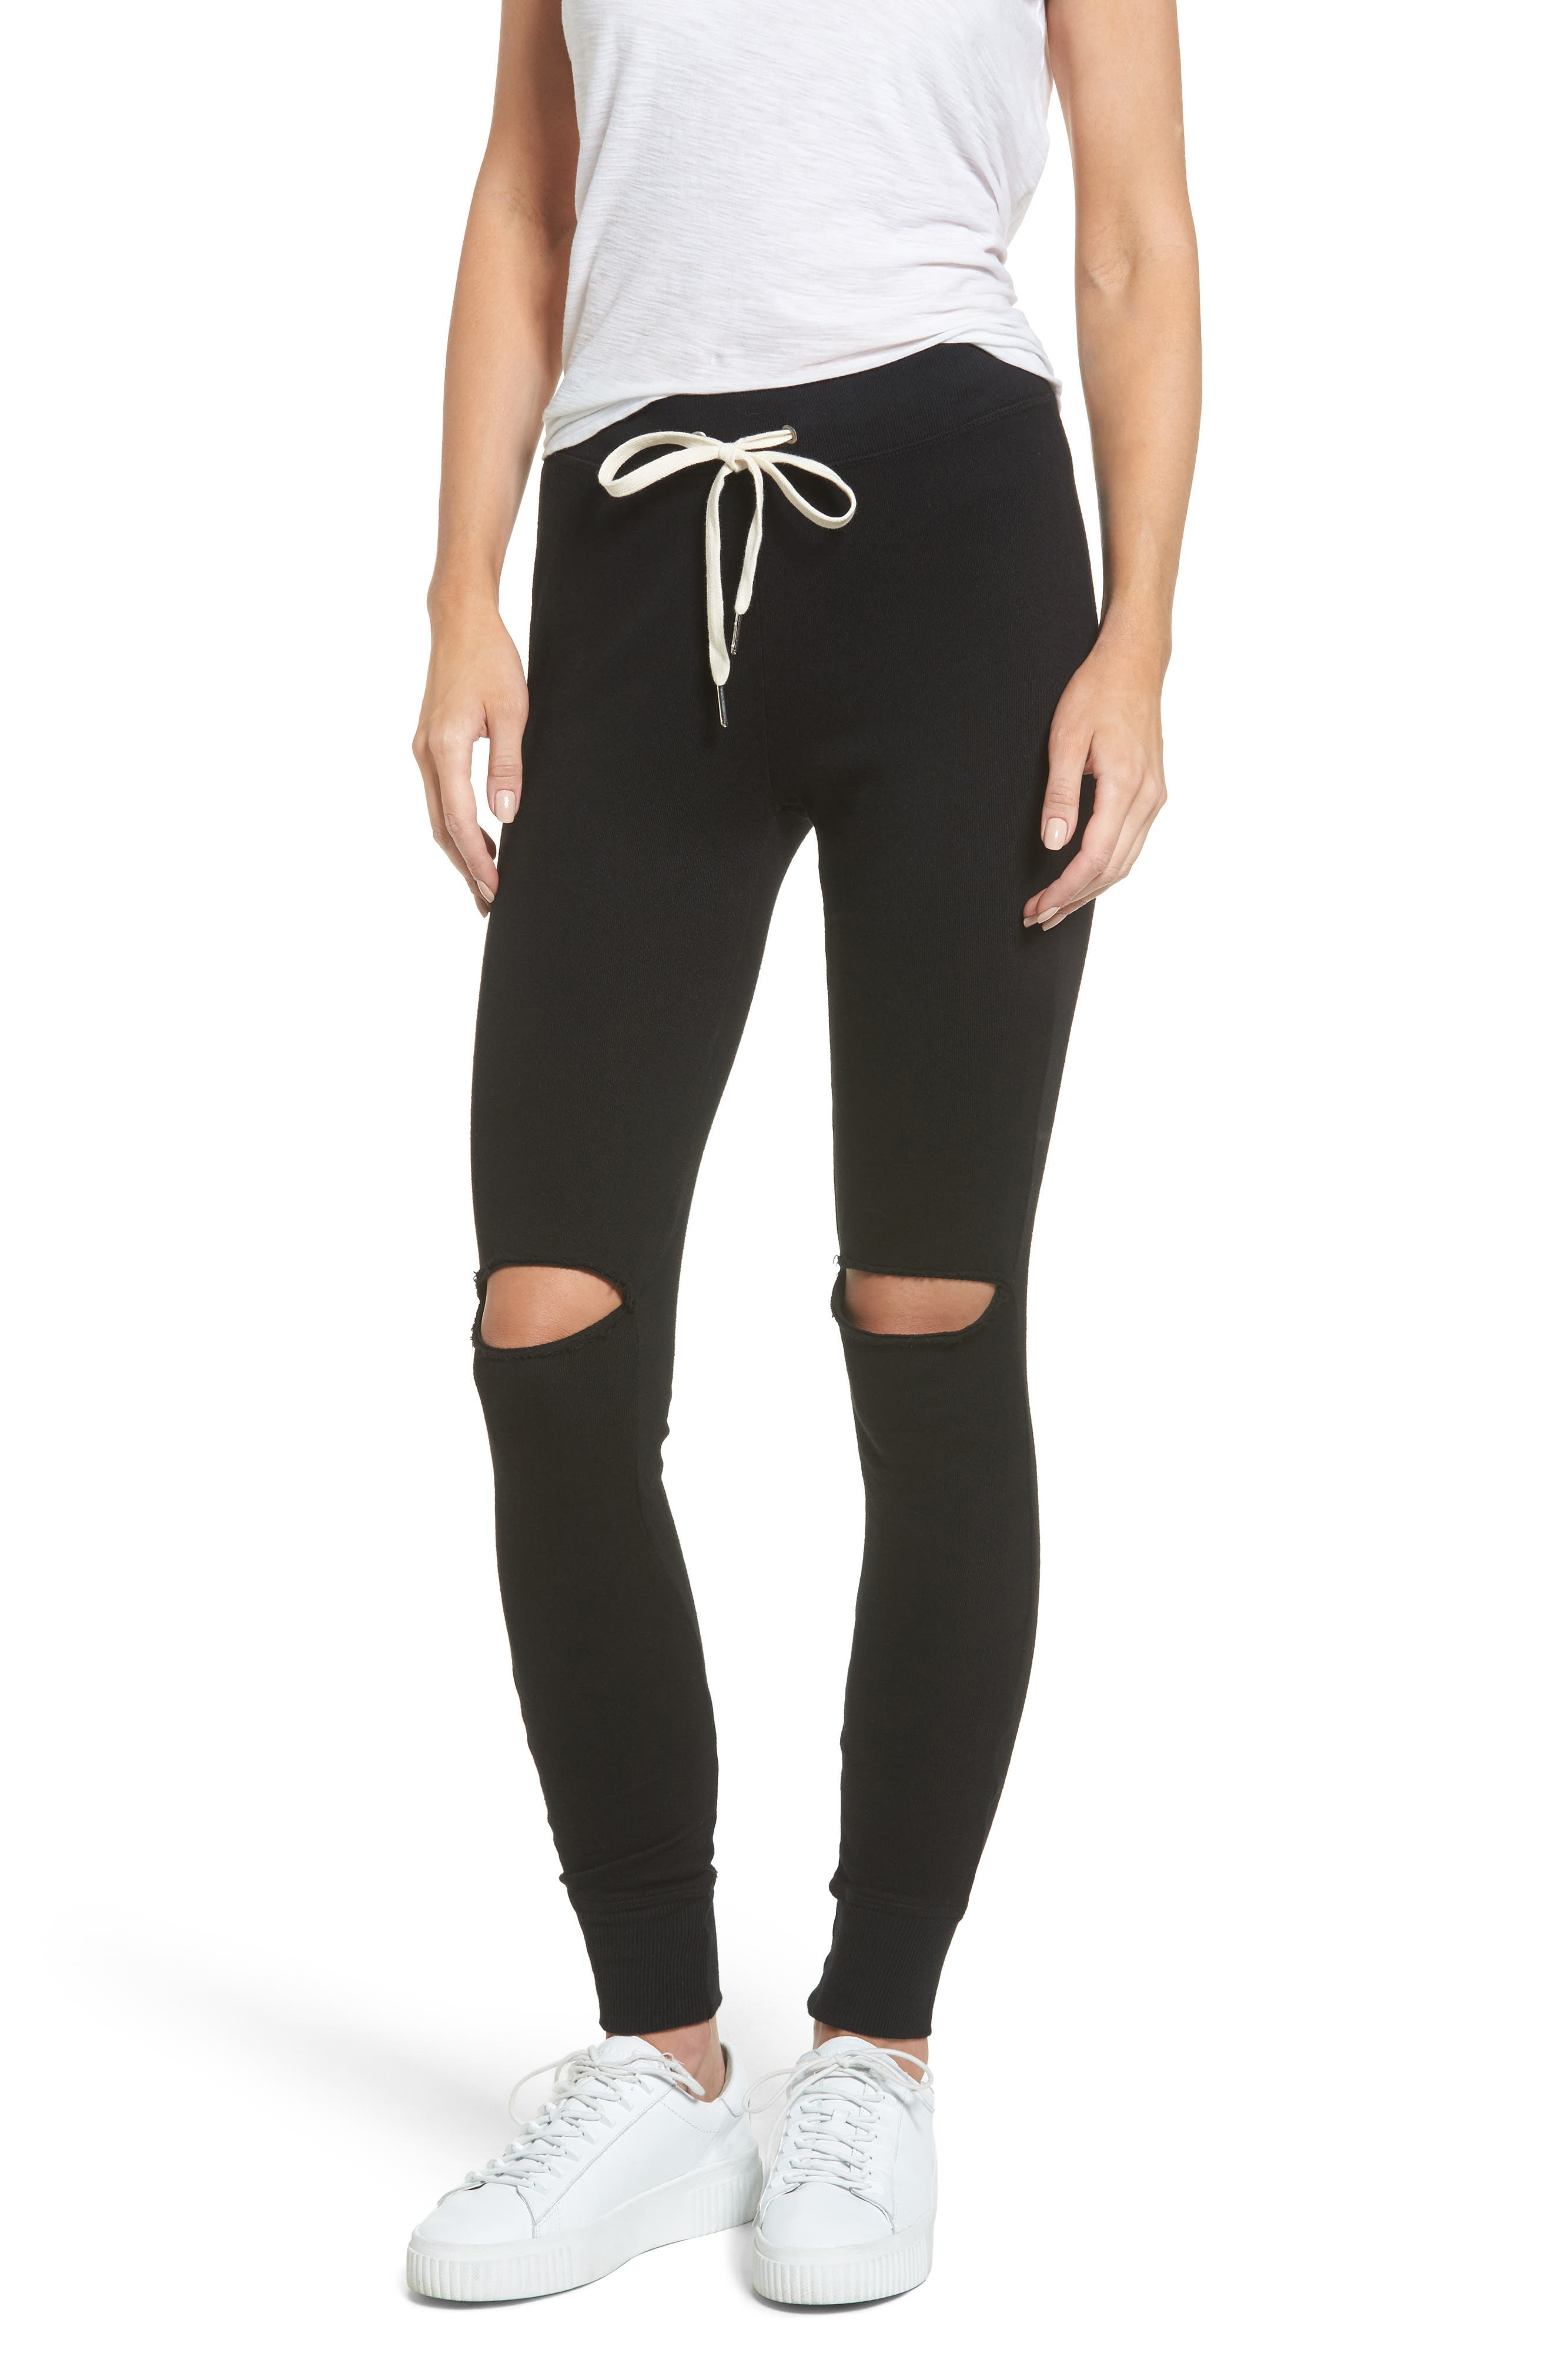 Ruthie Shredded Jogger Pants,                         Main,                         color, BLACK CAT